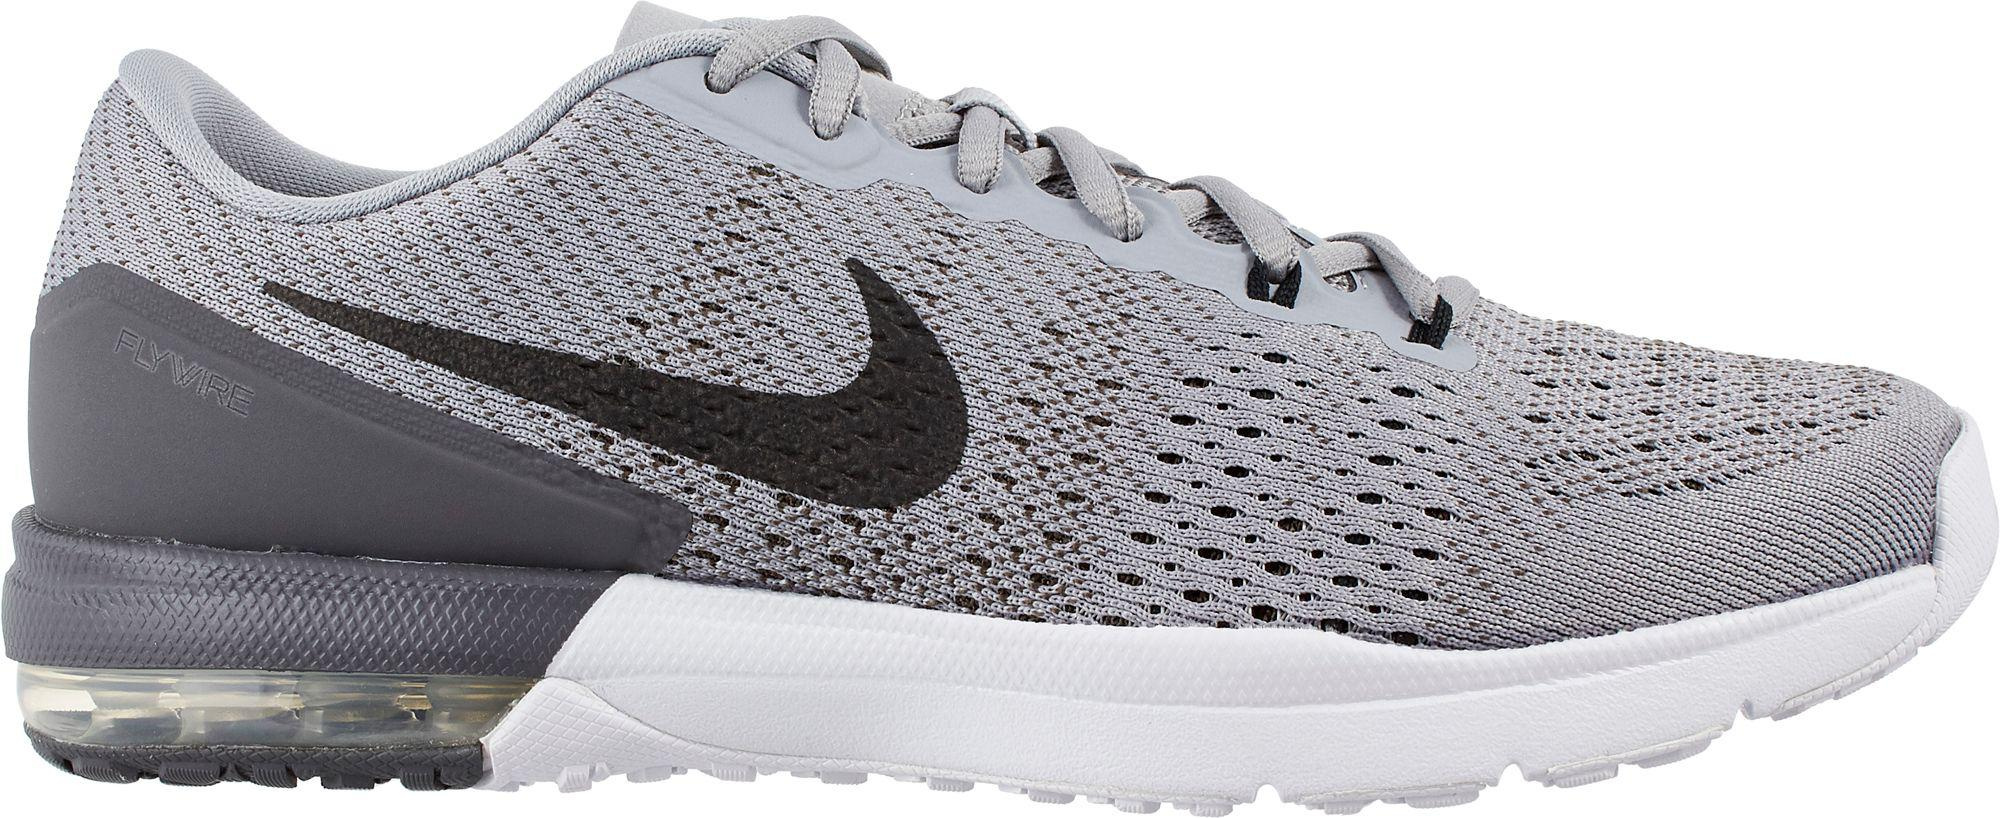 timeless design e3f04 bcf83 Mens Gray Air Max Typha Training Shoes. 110 90 From Dicks Sporting Goods   Lyst - Nike ...